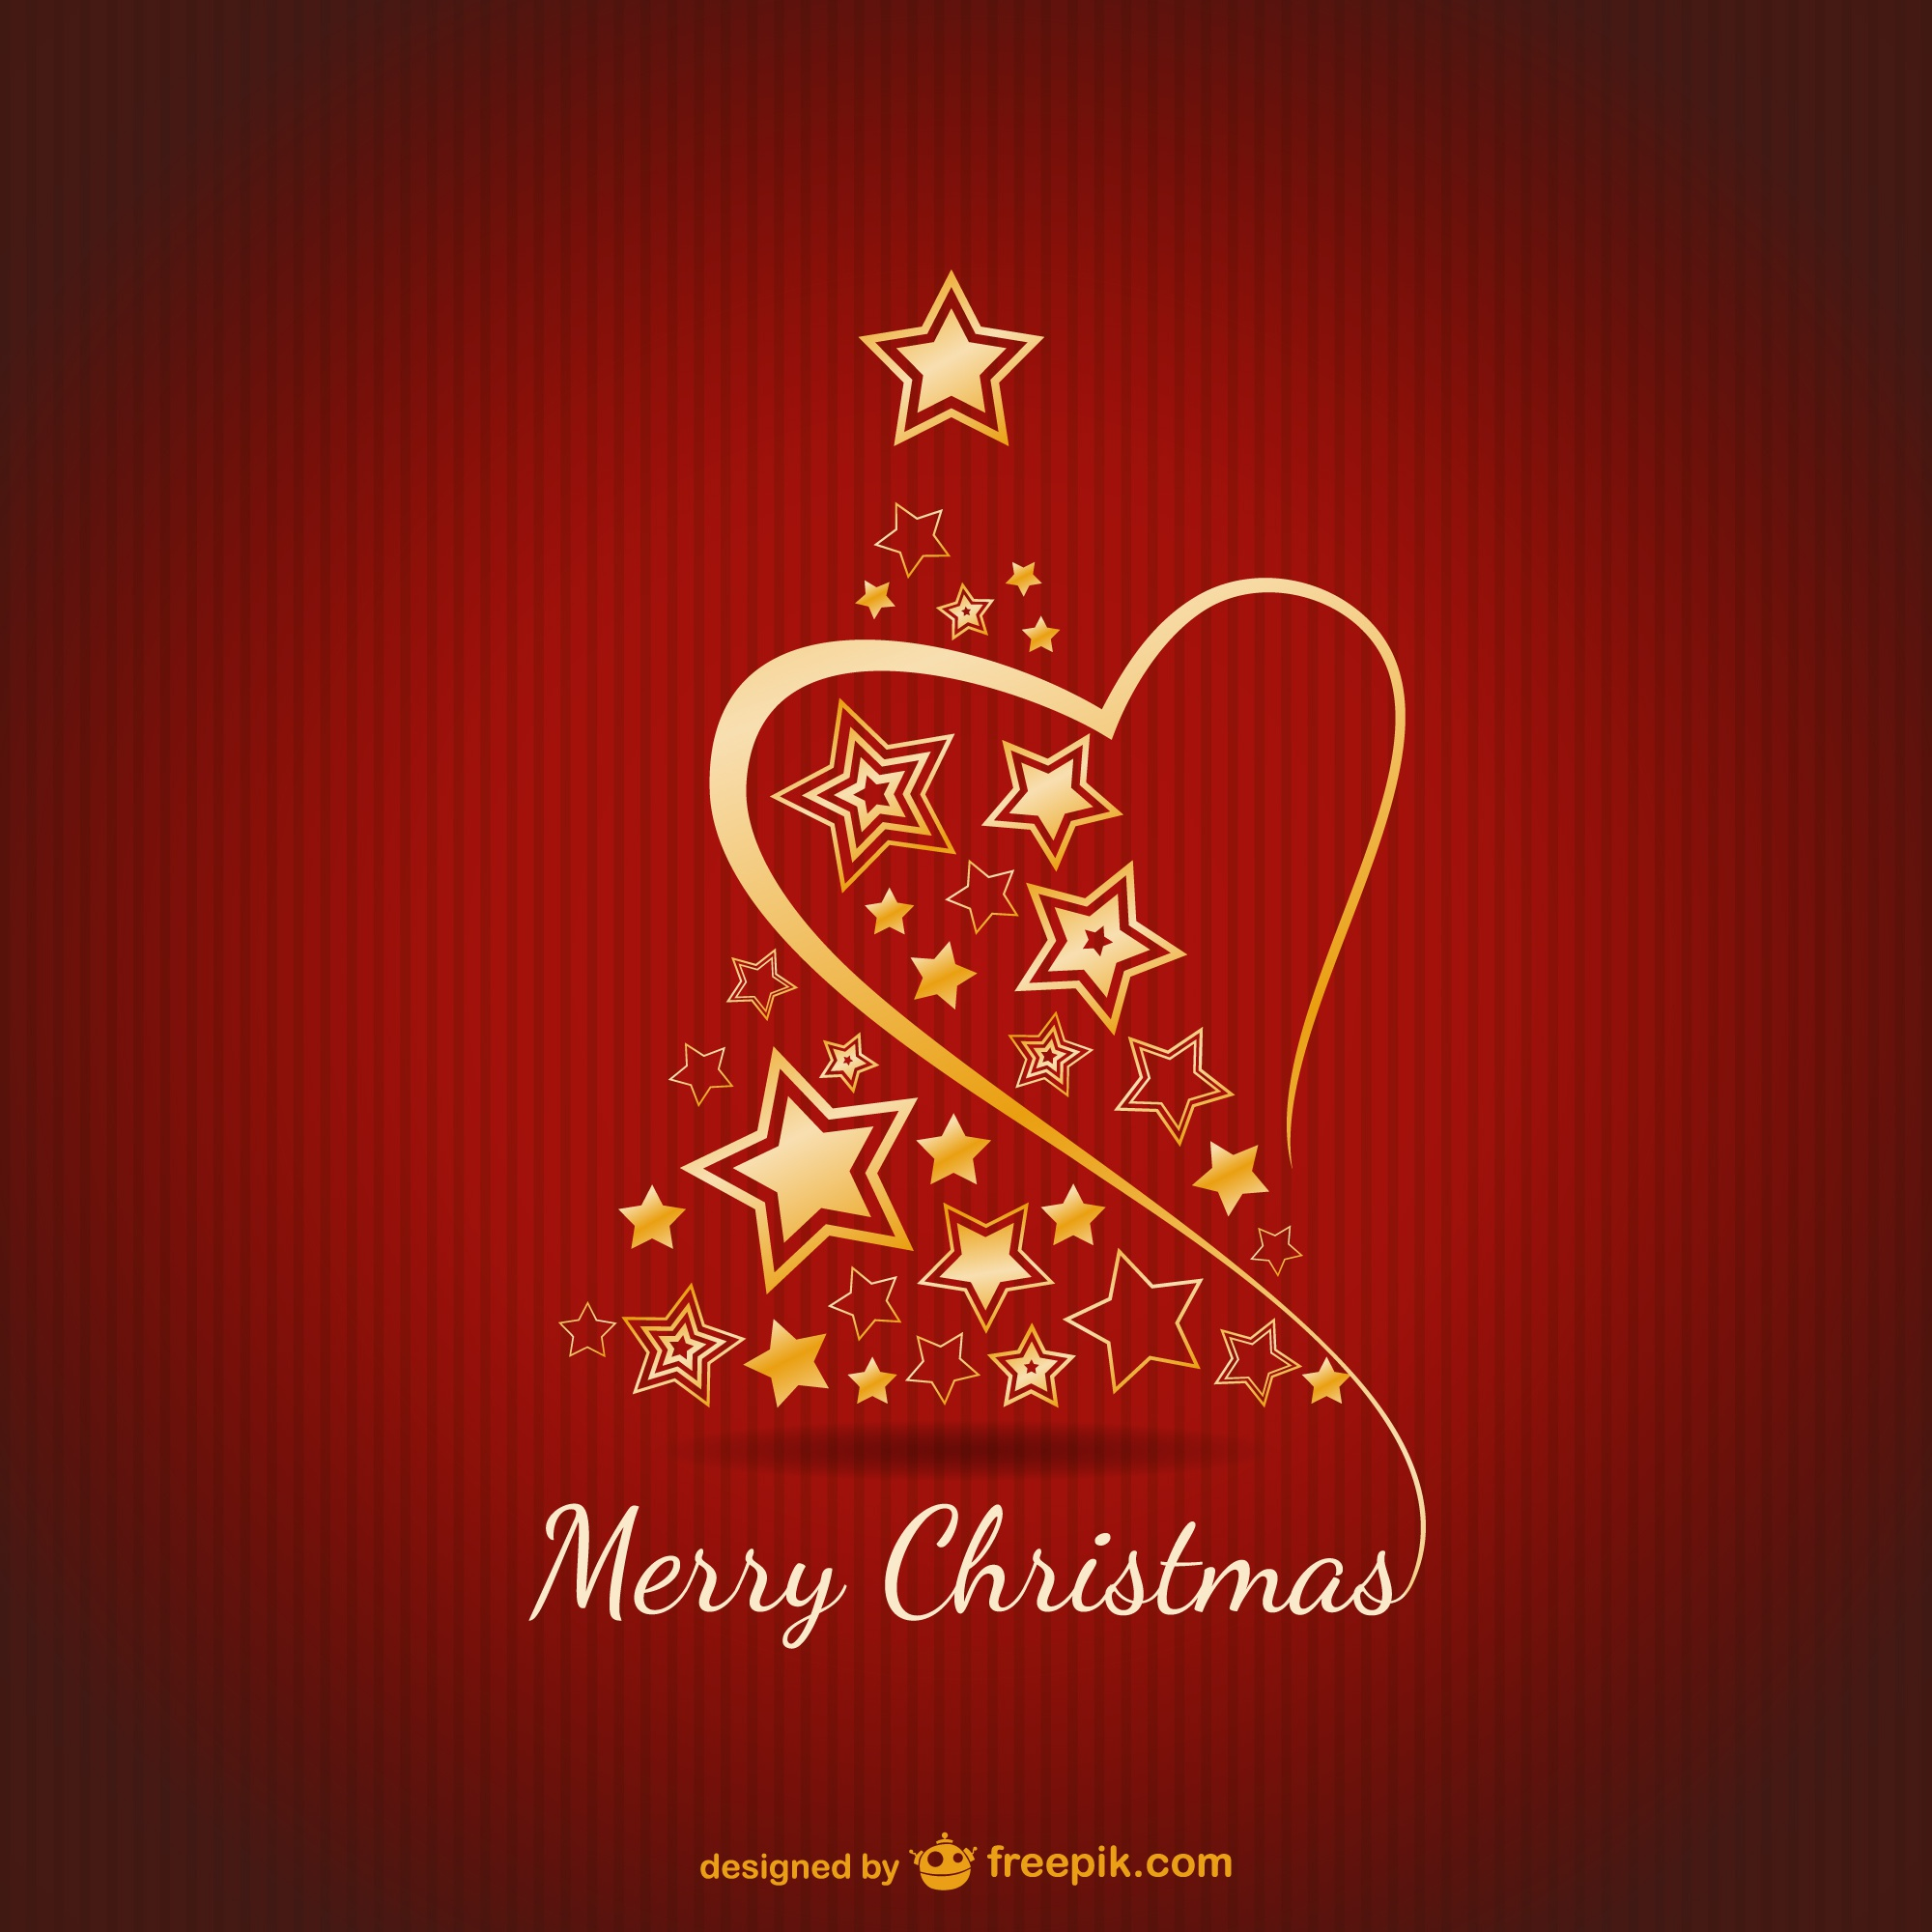 Merry Christmas card with golden ornaments